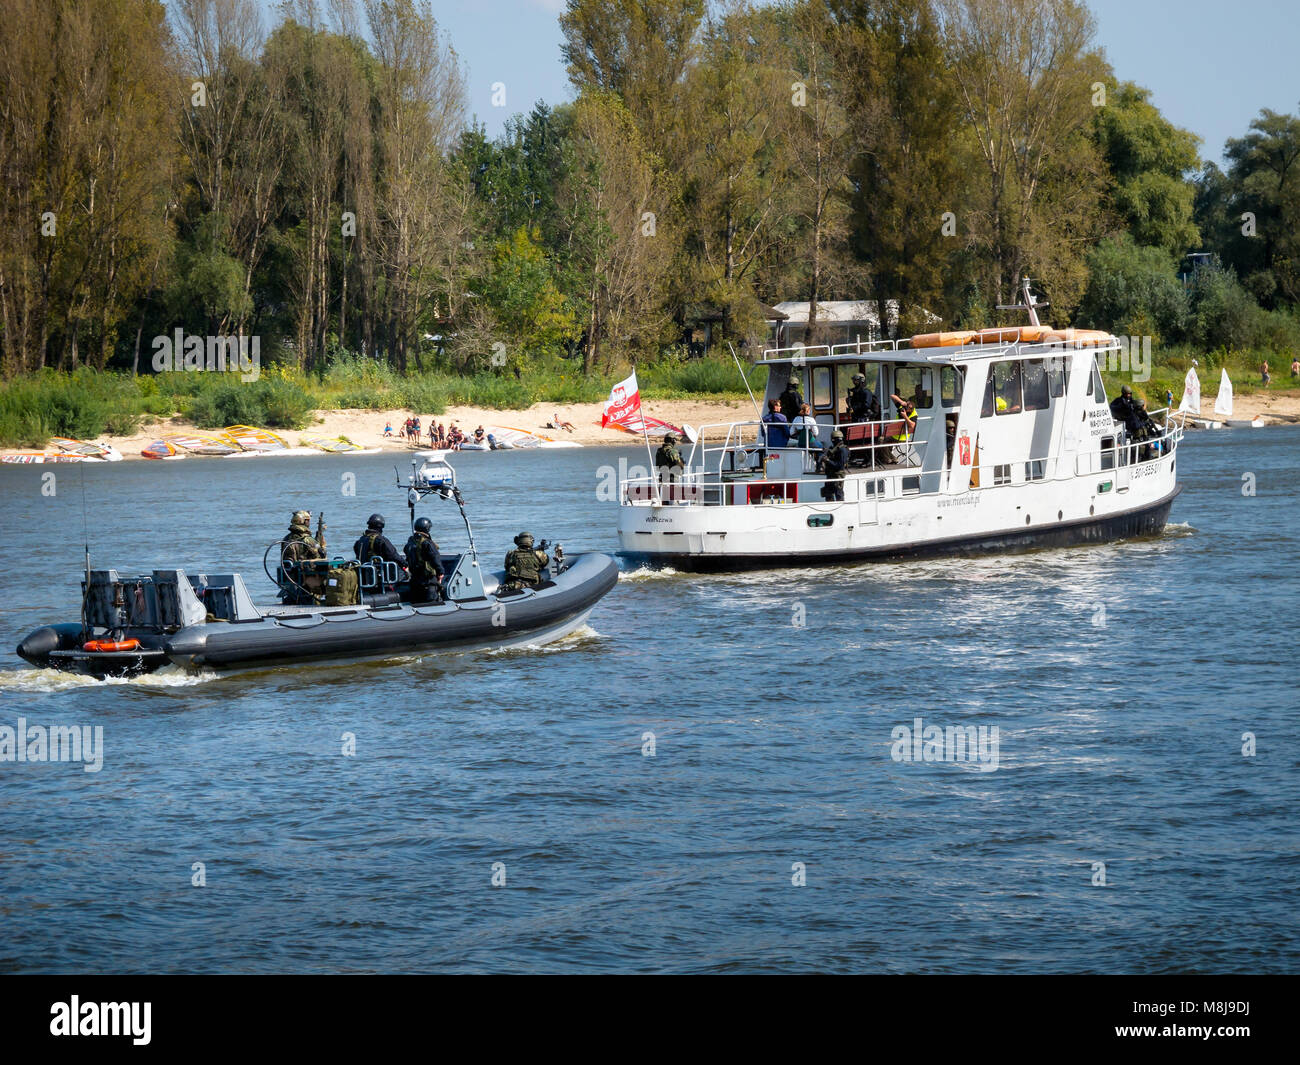 GROM Special Forces preparing for boarding a boat with terrorists from pontoons on the Vistula River. WARSAW, POLAND Stock Photo